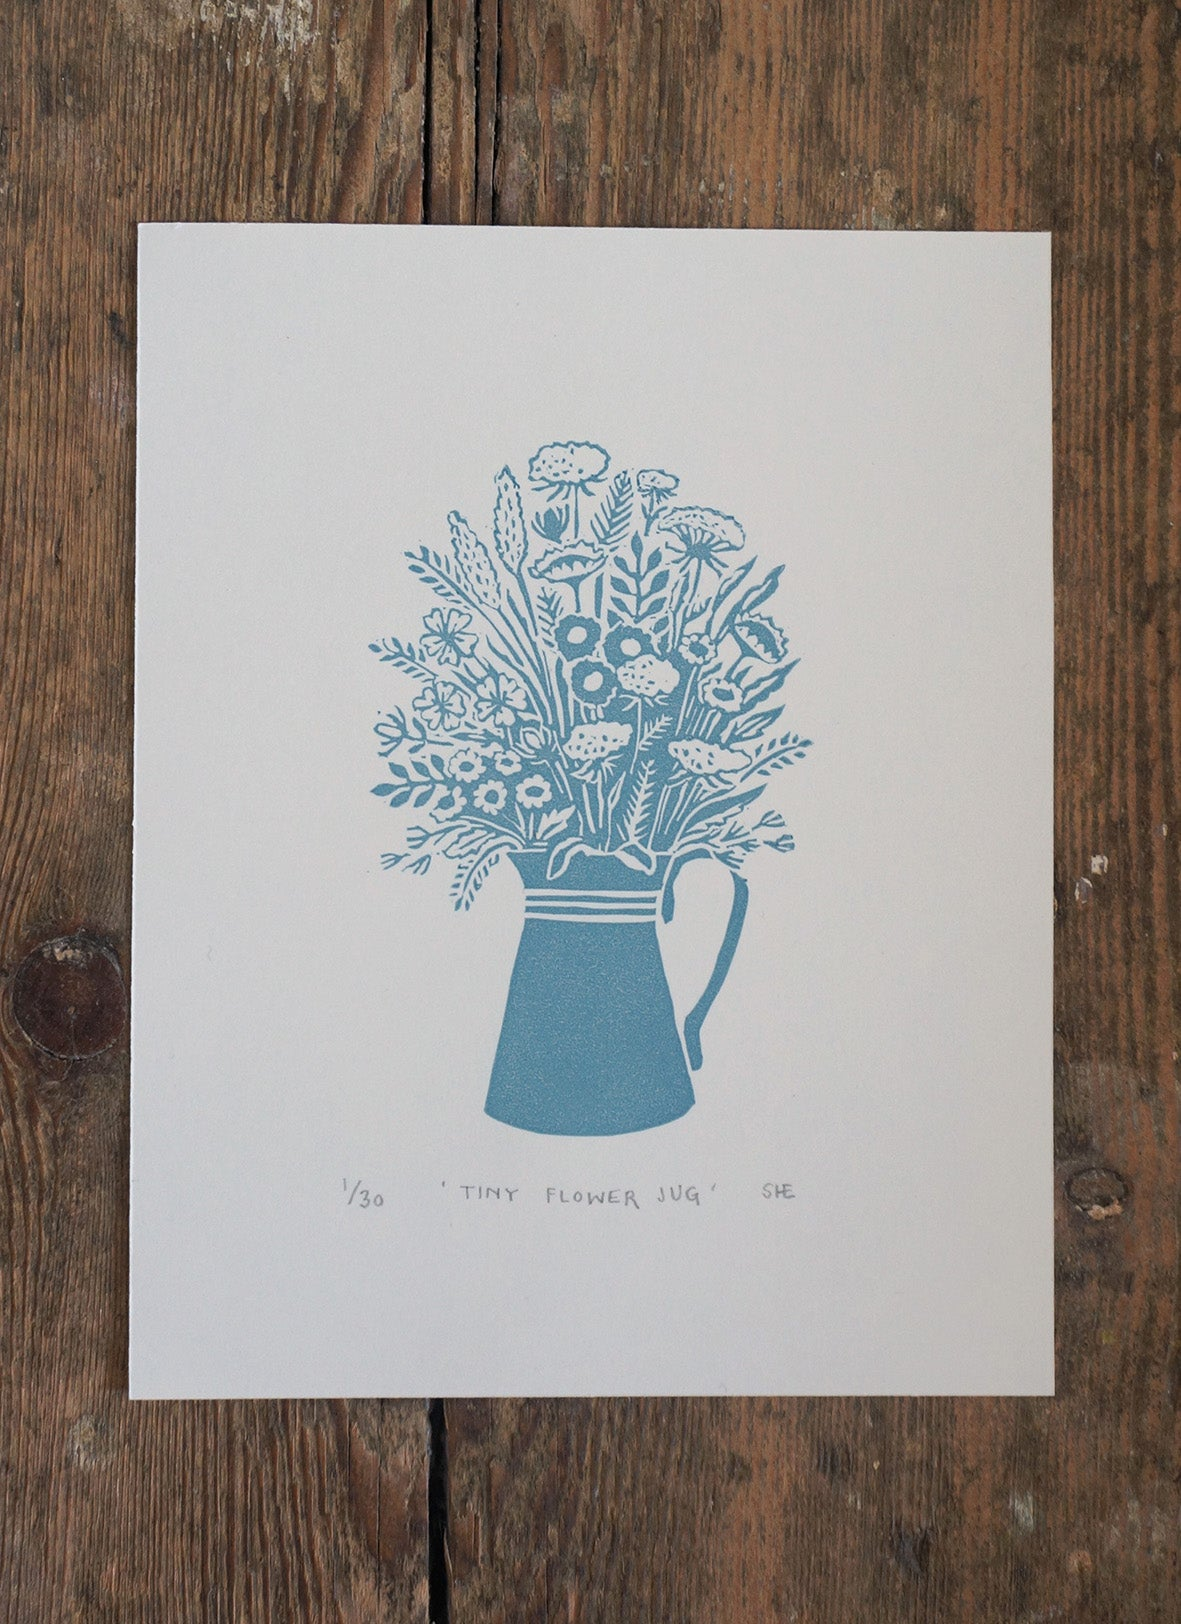 Image of Tiny Flower Jug - Lincout